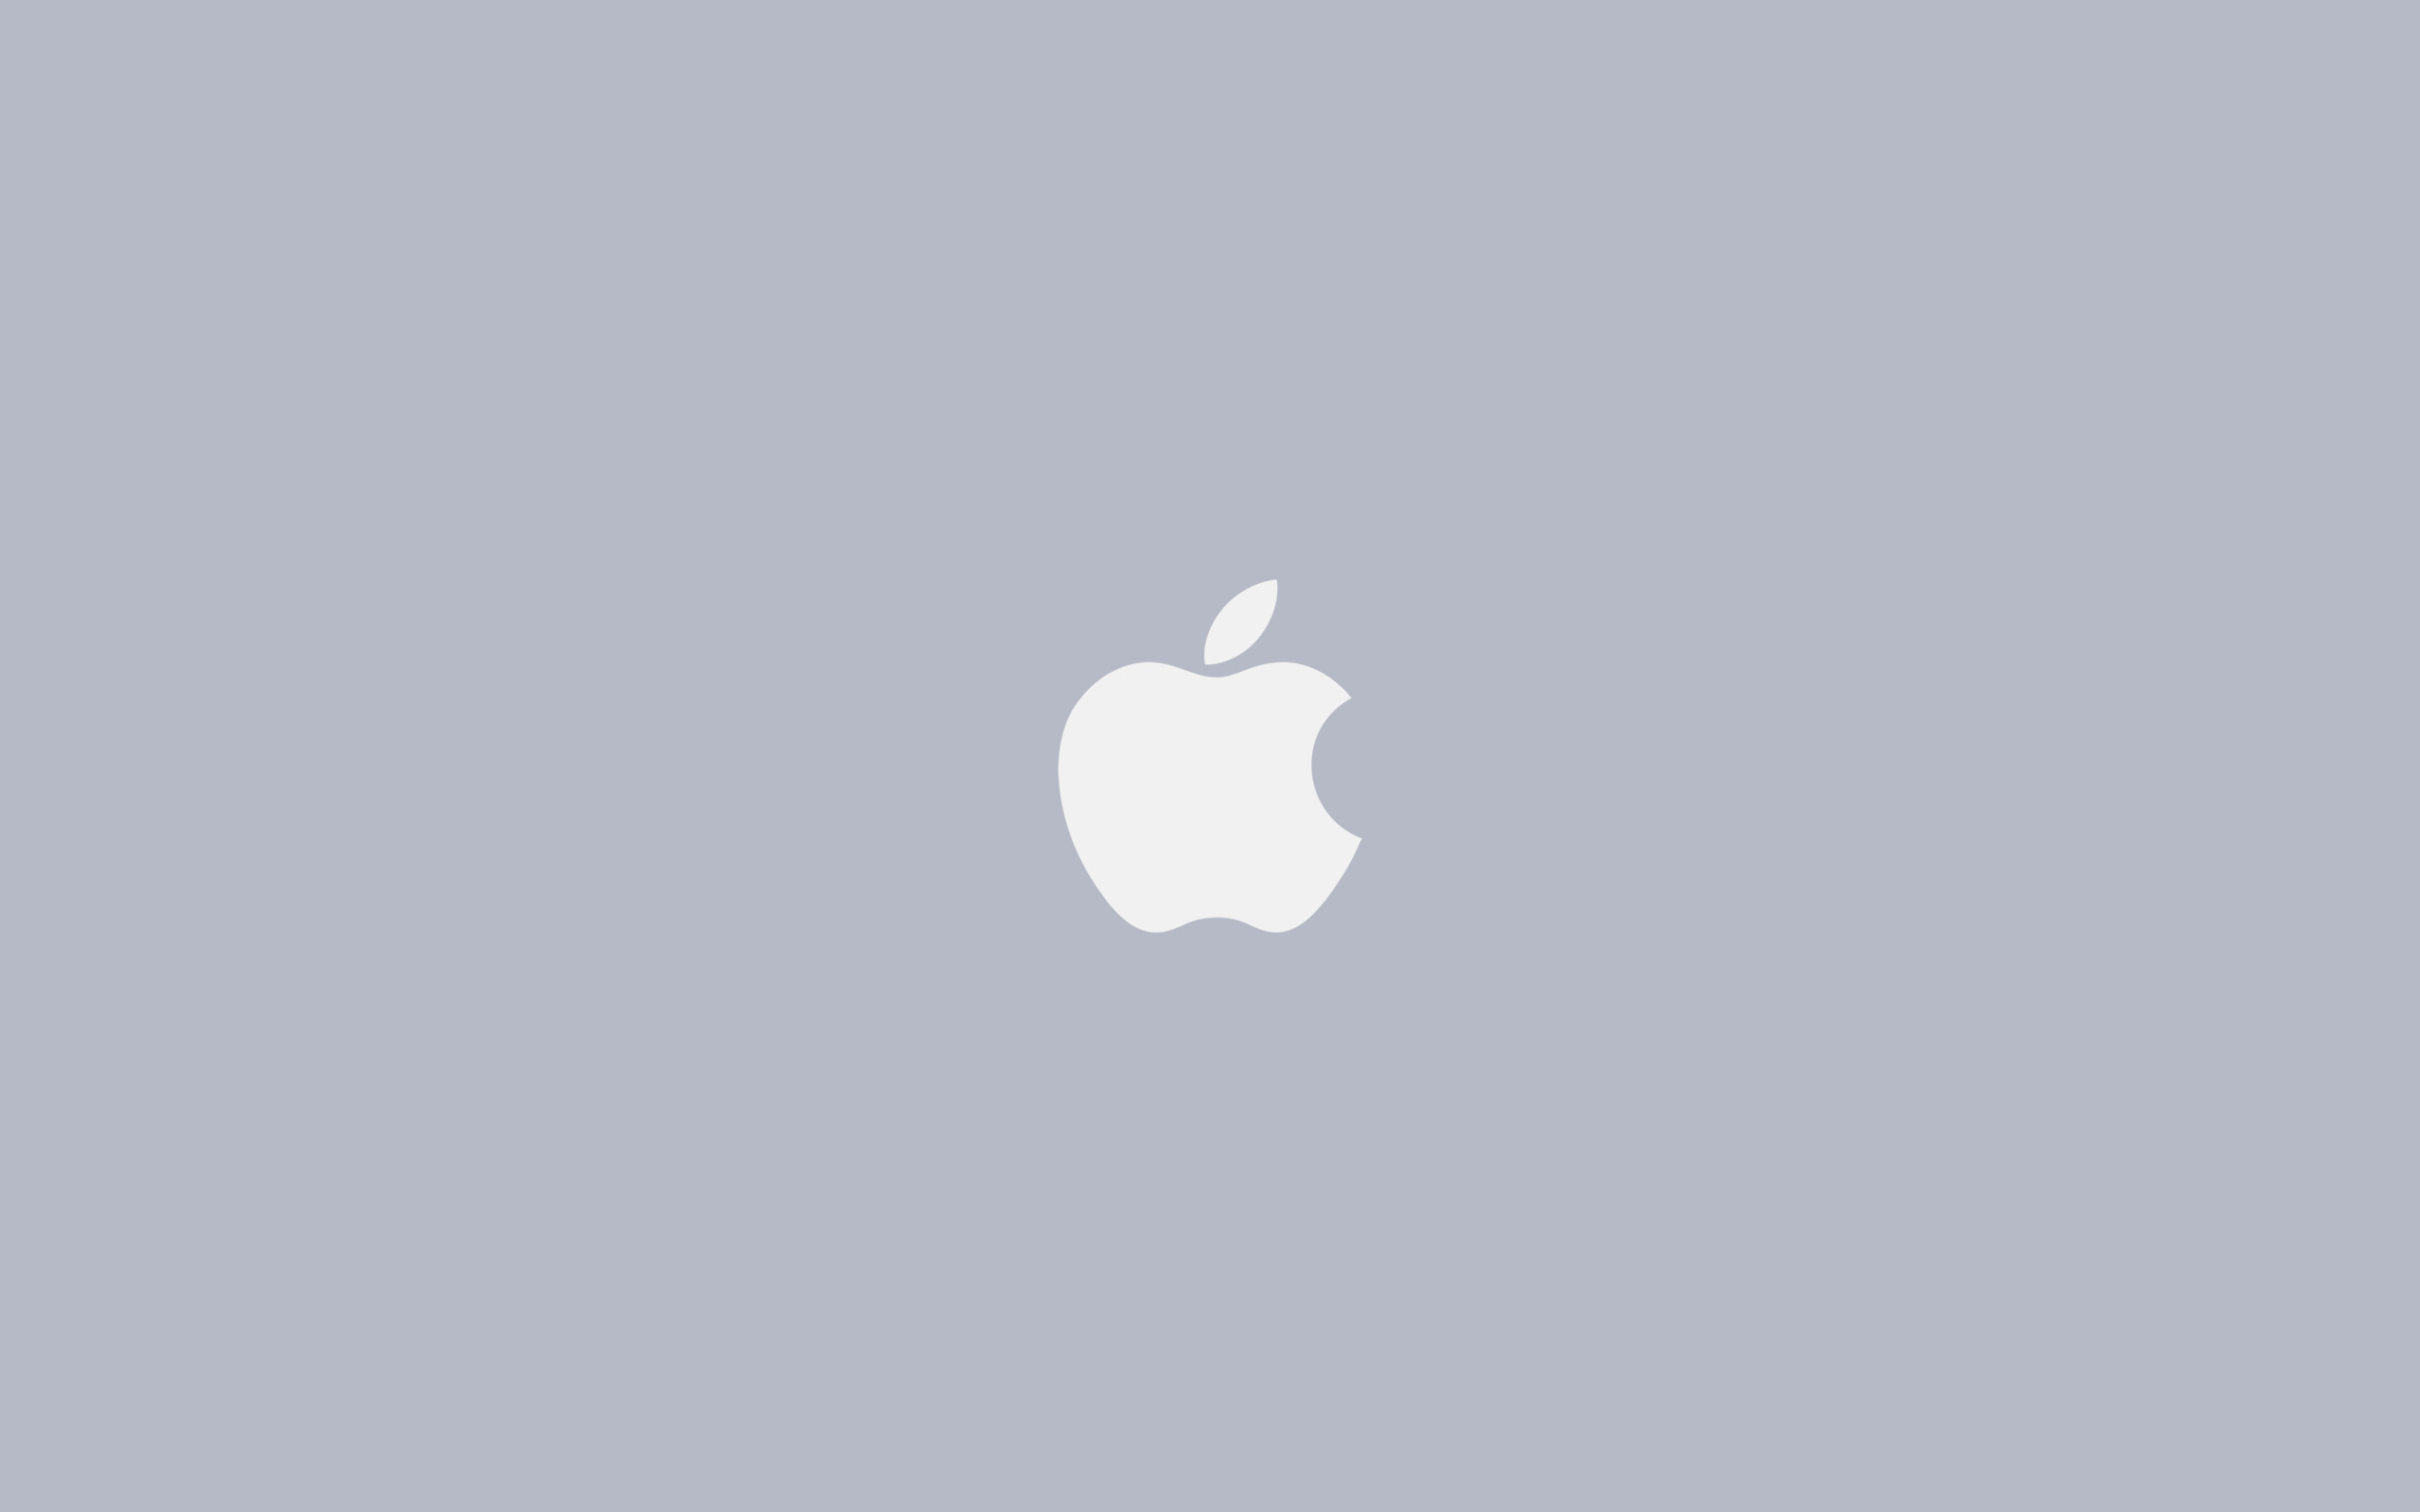 1080x1920 Best Of Macintosh Apple Logo Wallpapers Tap Image For More